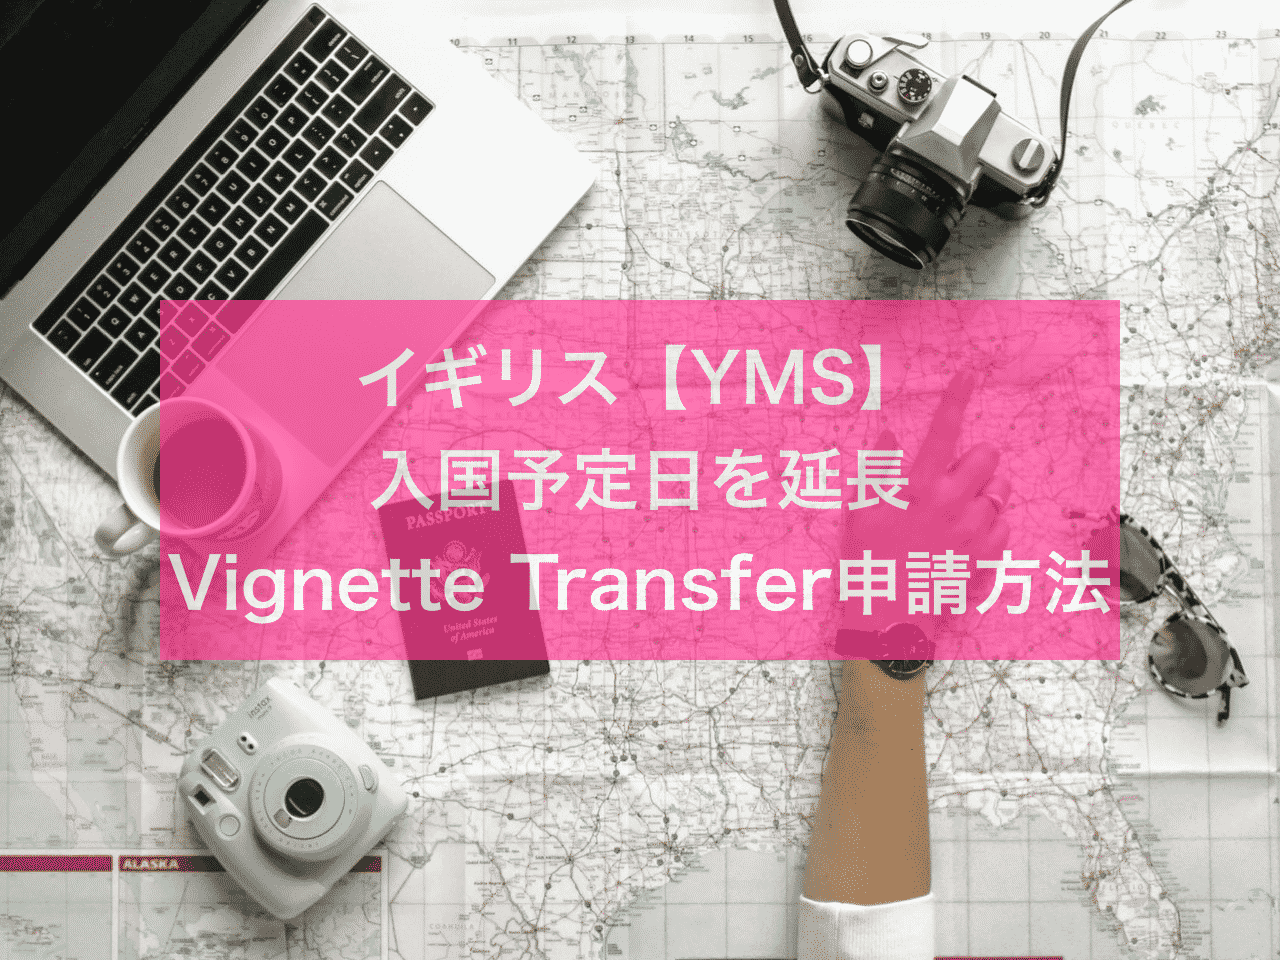 minimal traveler, eyecatch, uk yms vignette transfer